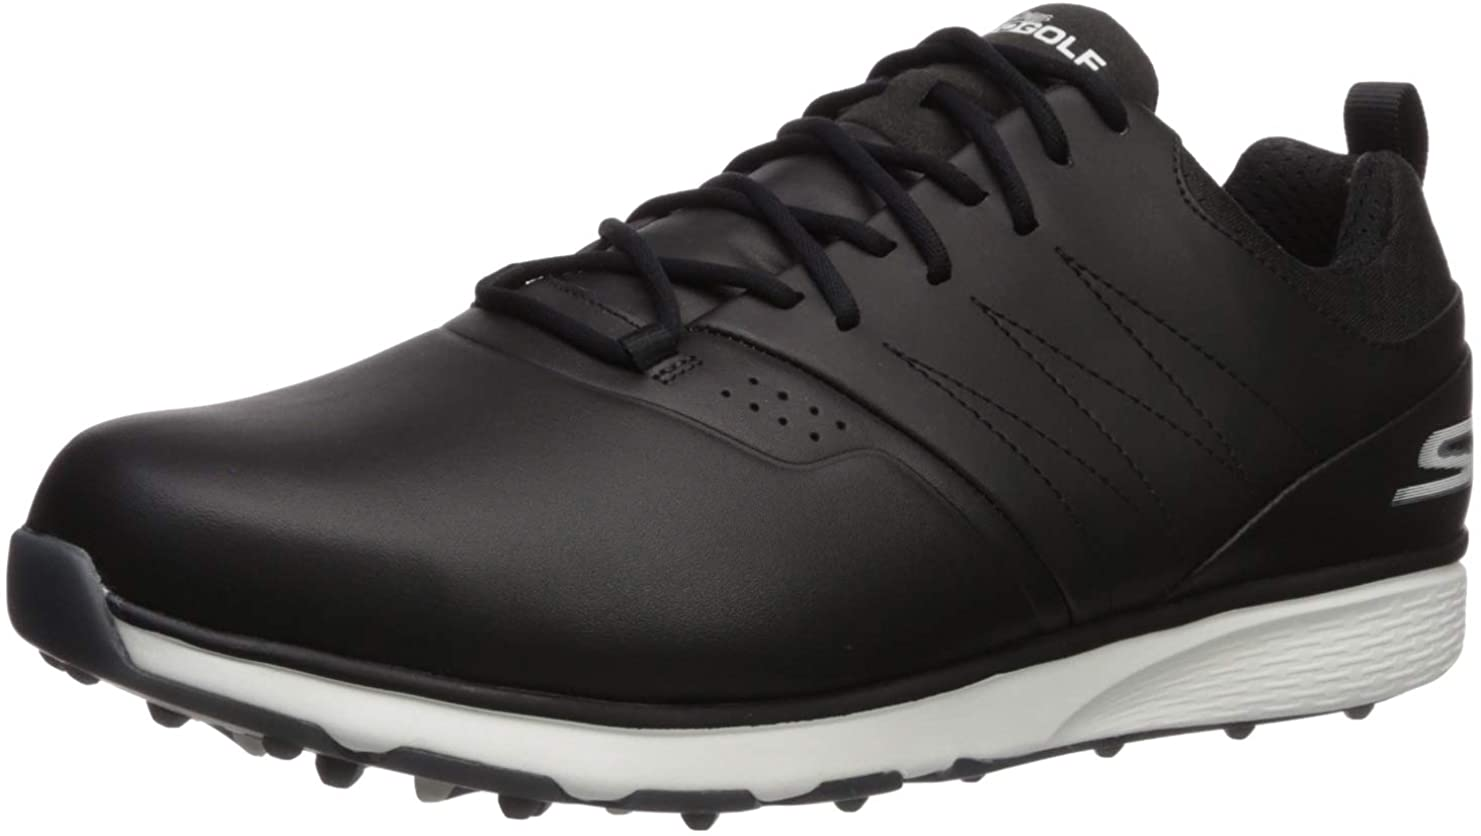 tijeras Zapatos antideslizantes loco  Amazon.com | Skechers GO GOLF Men's Mojo Waterproof Golf Shoe | Golf